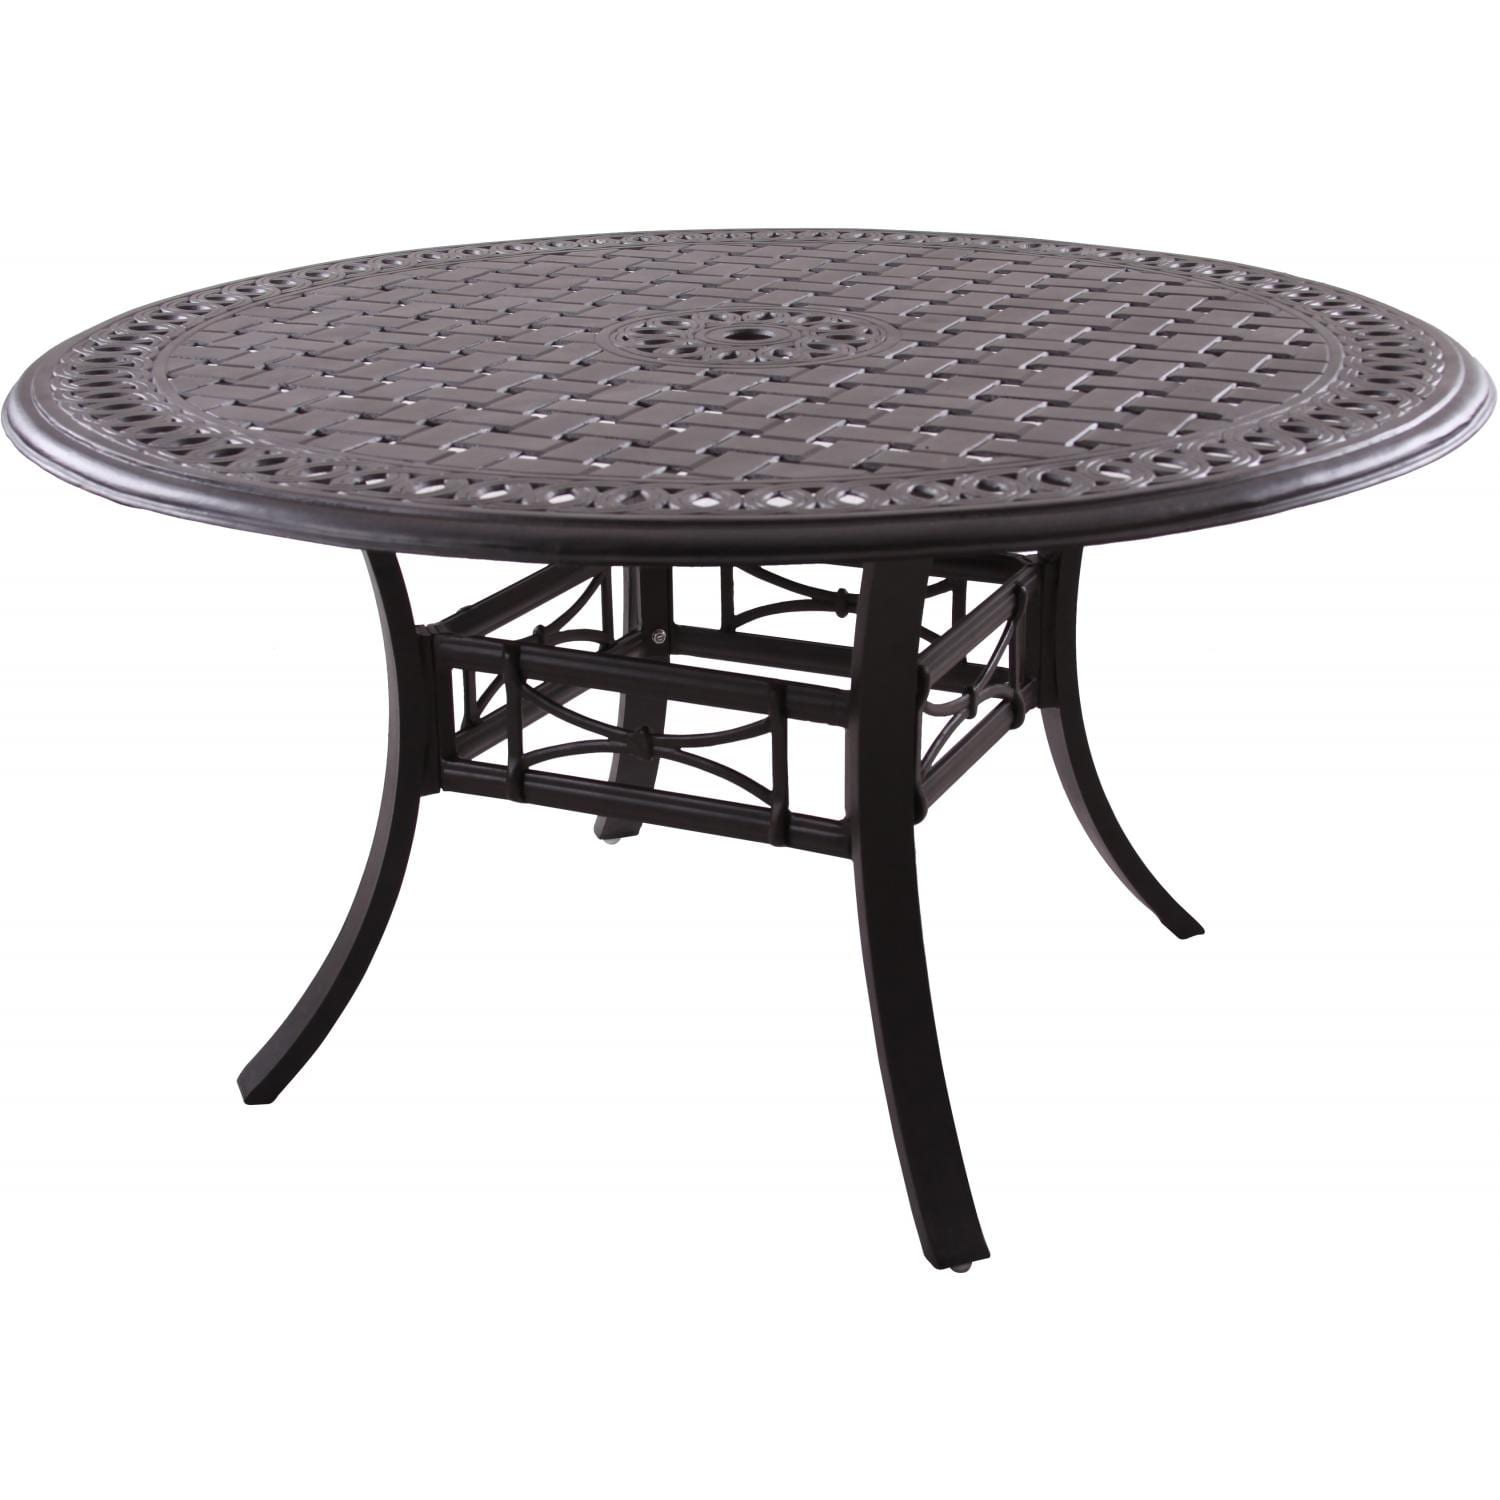 Darlee Series 88 54-Inch Cast Aluminum Patio Dining Table